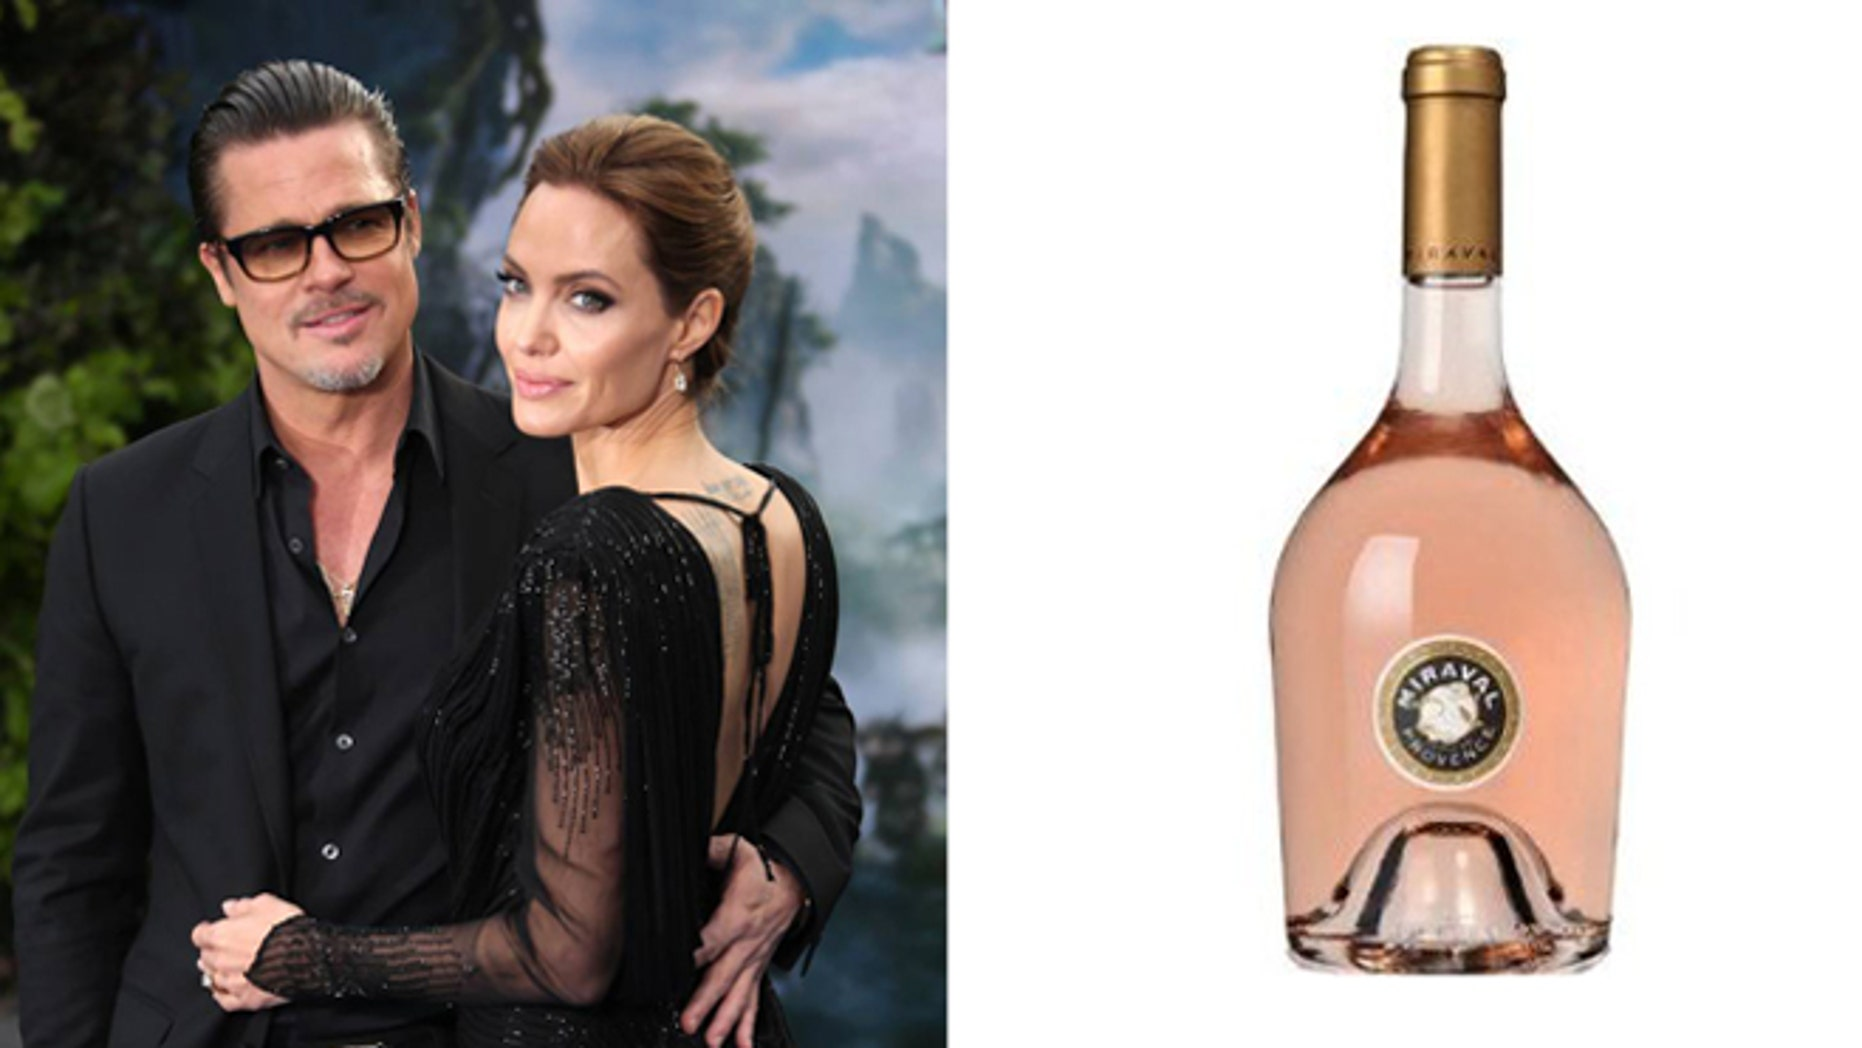 Brangelina's wine is being counterfeiter overseas.